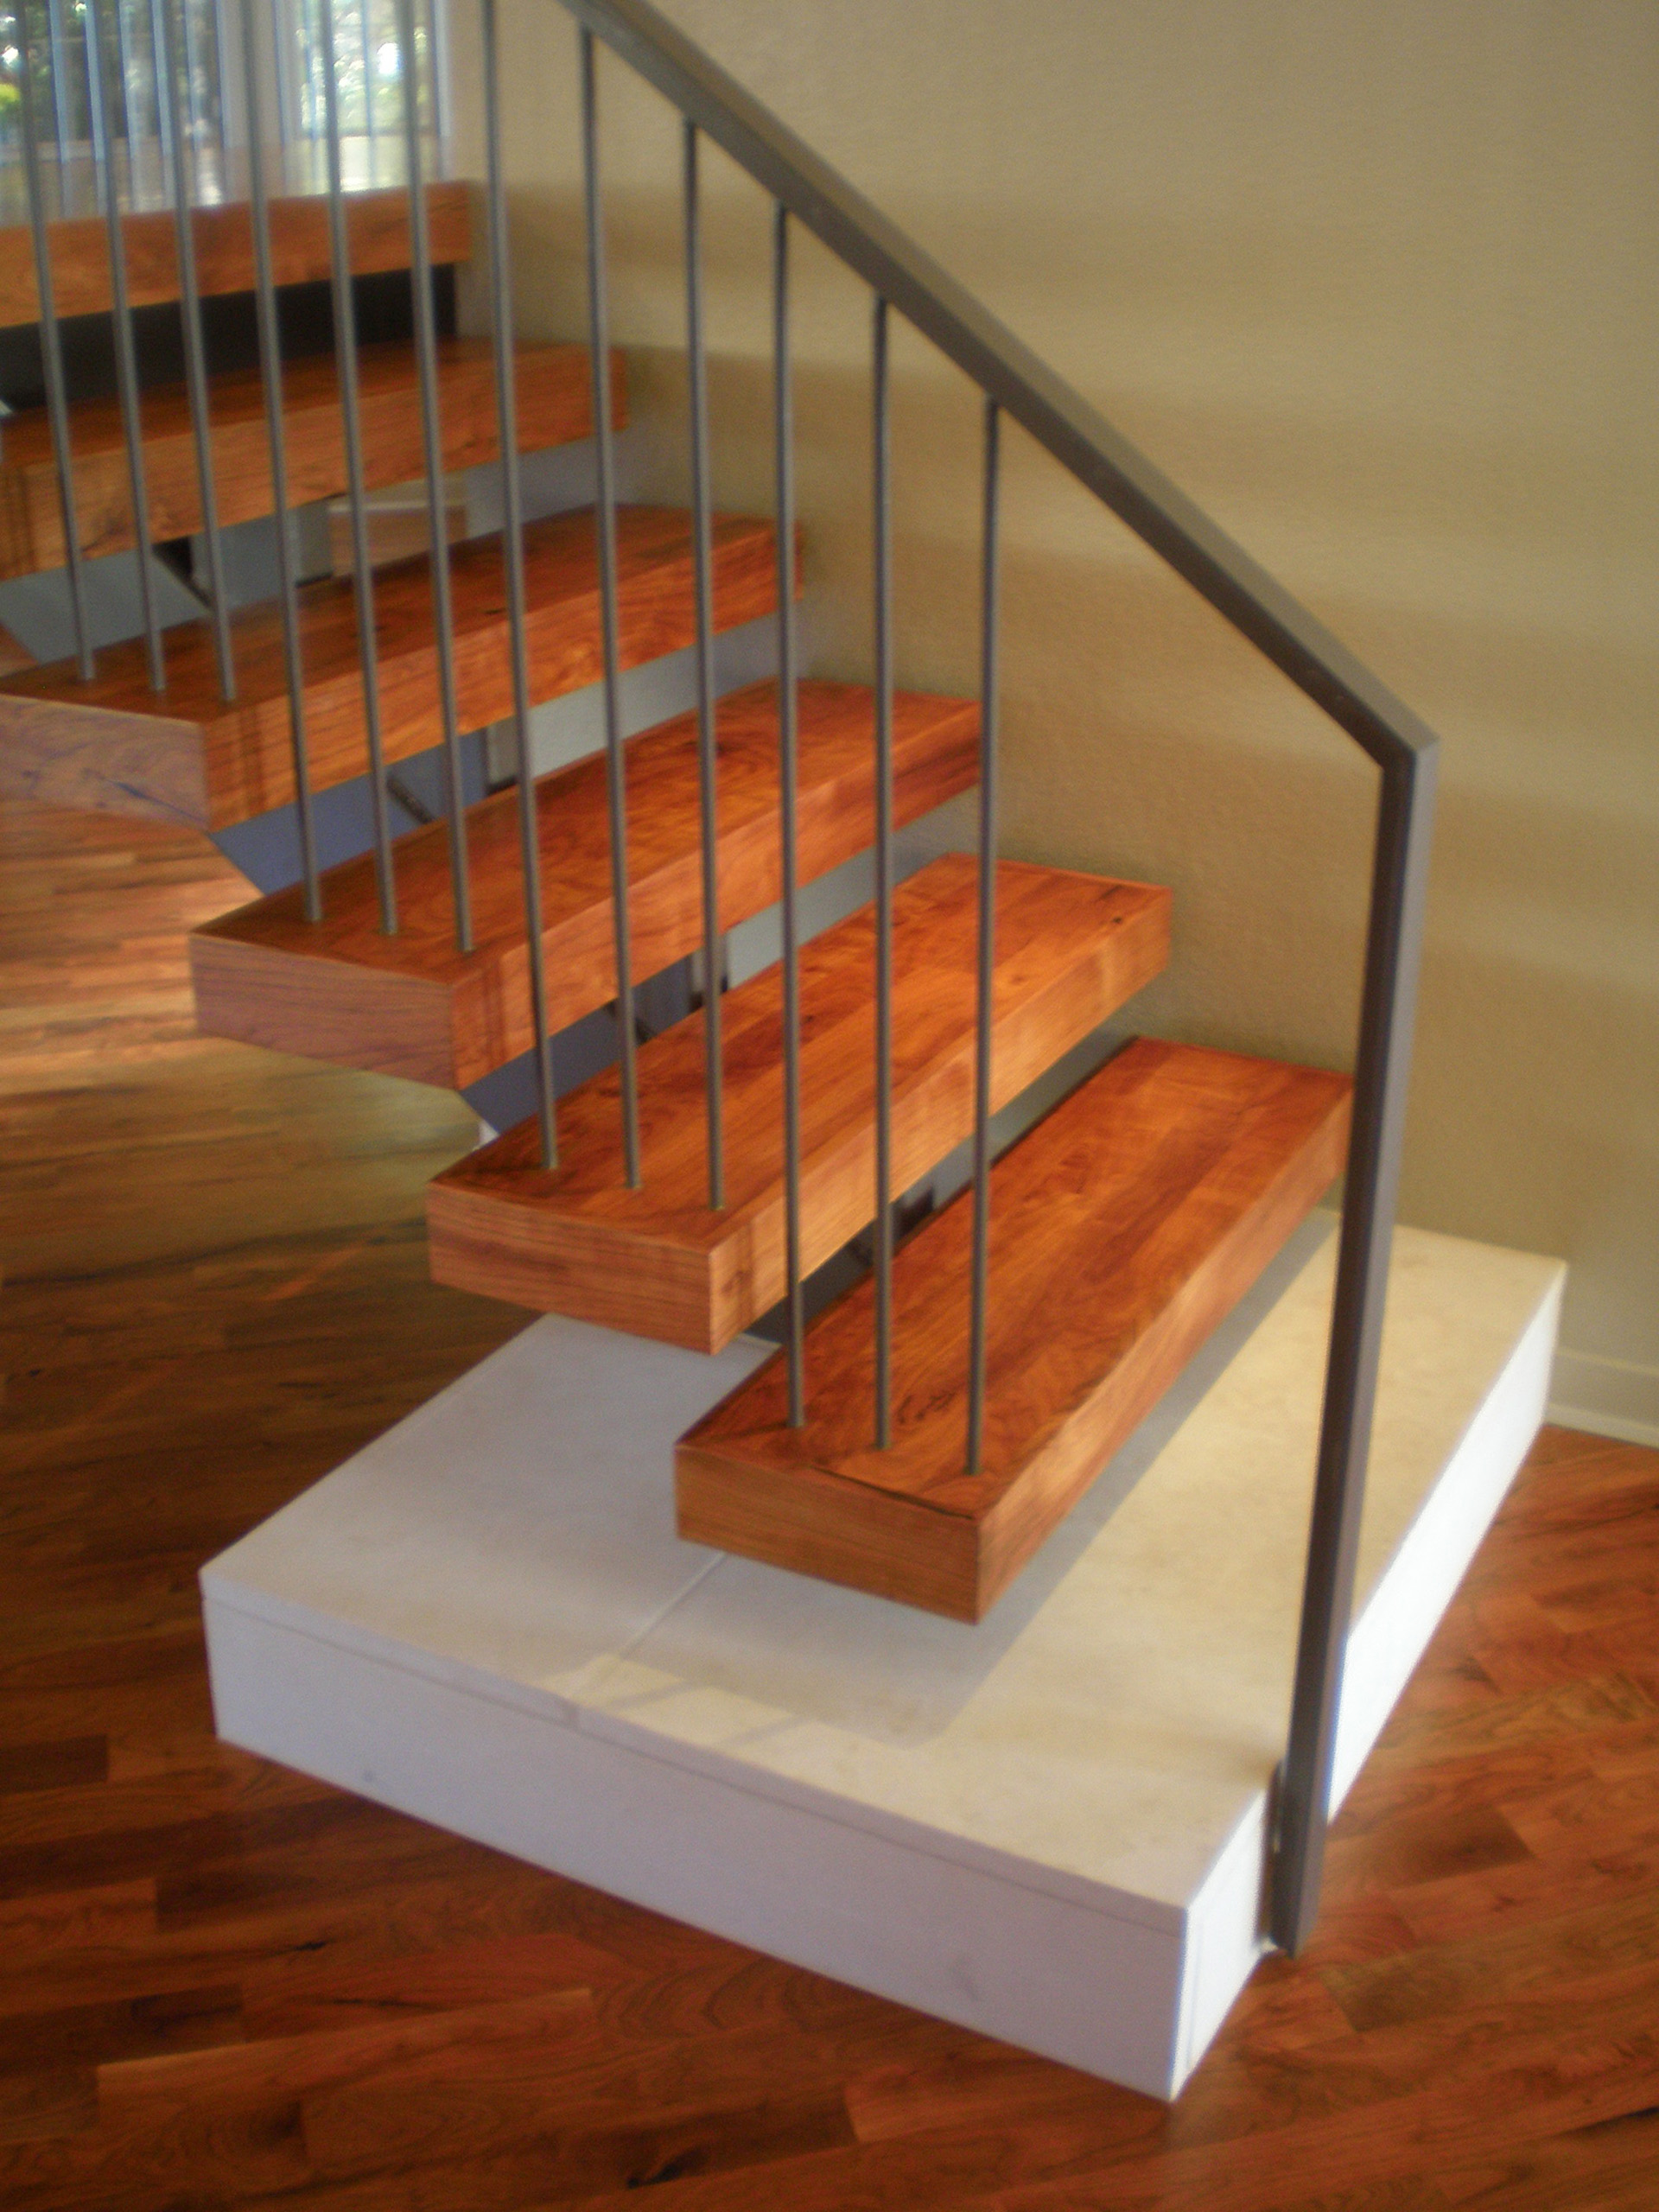 A32 STAIR close up